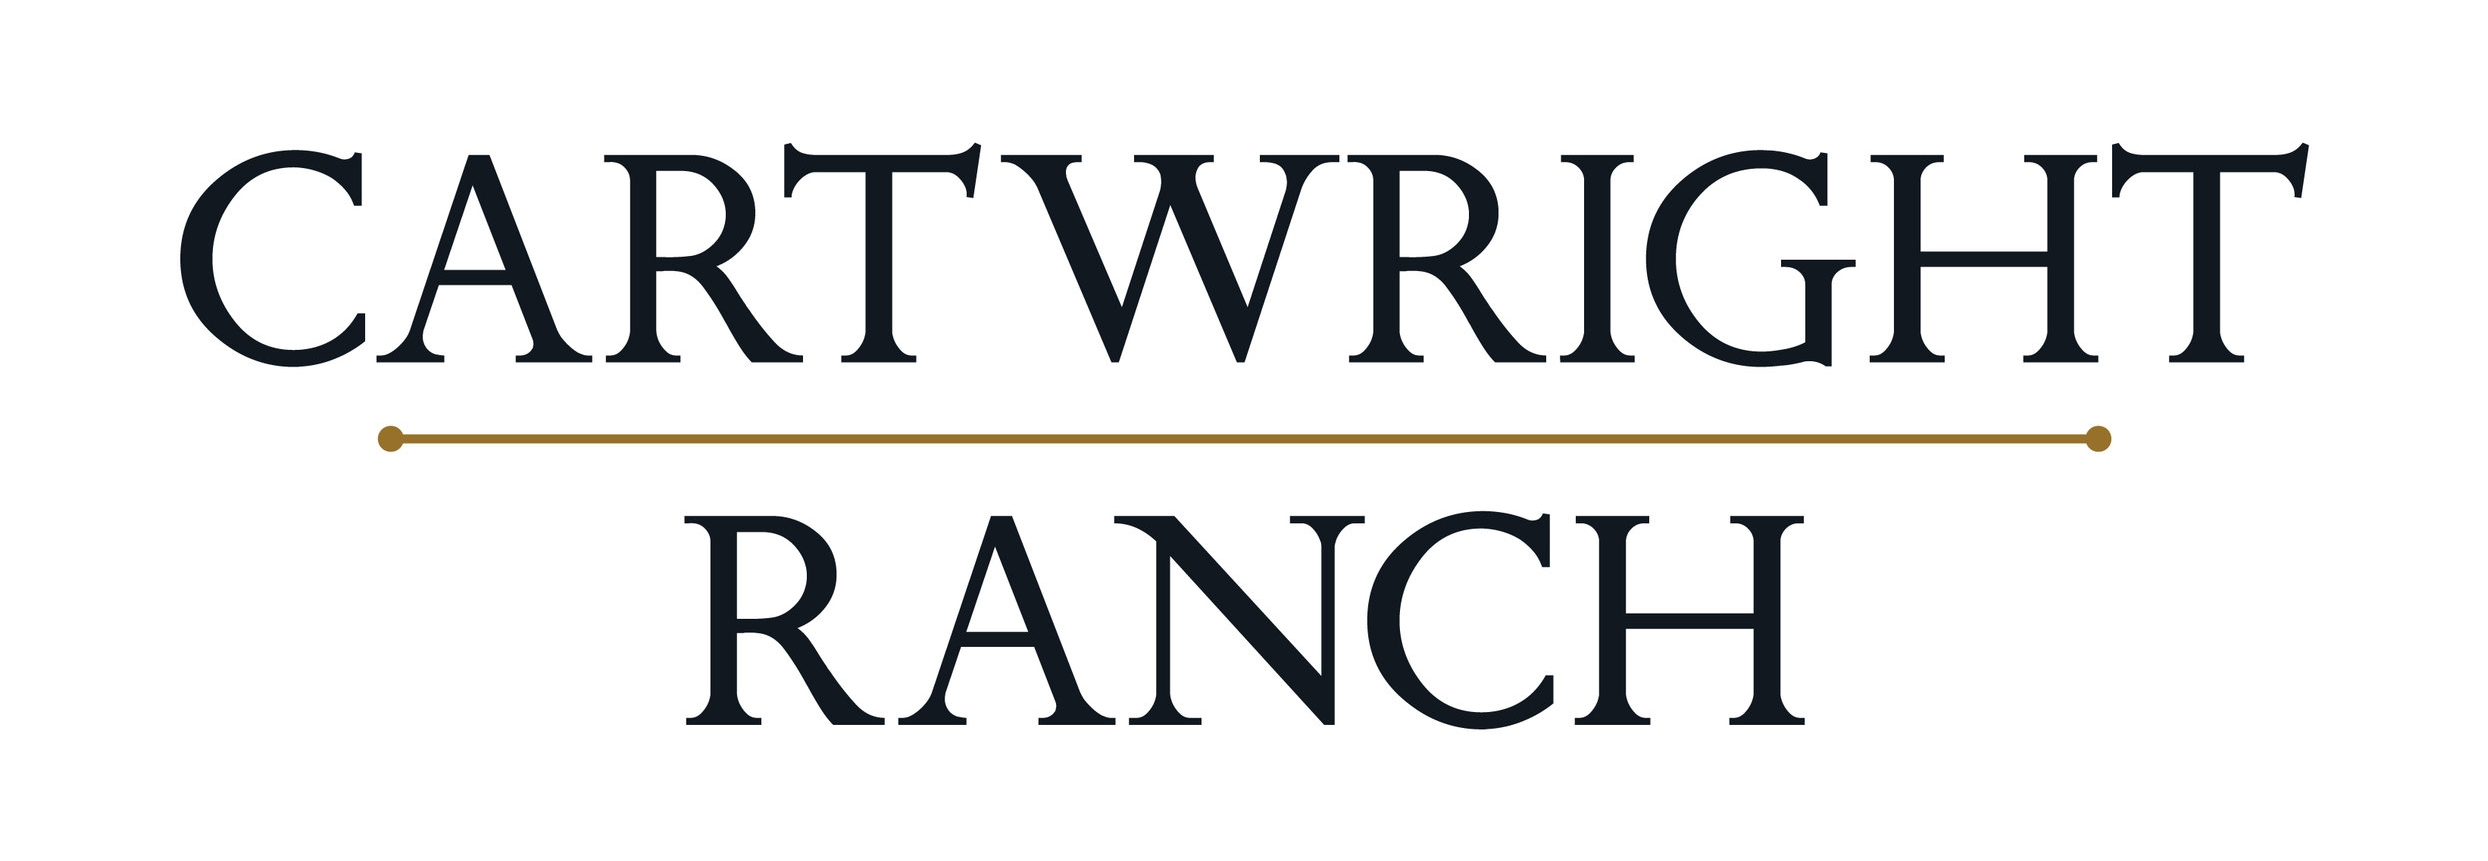 14_CartwrightRanch_Logos_Finals-01.jpg